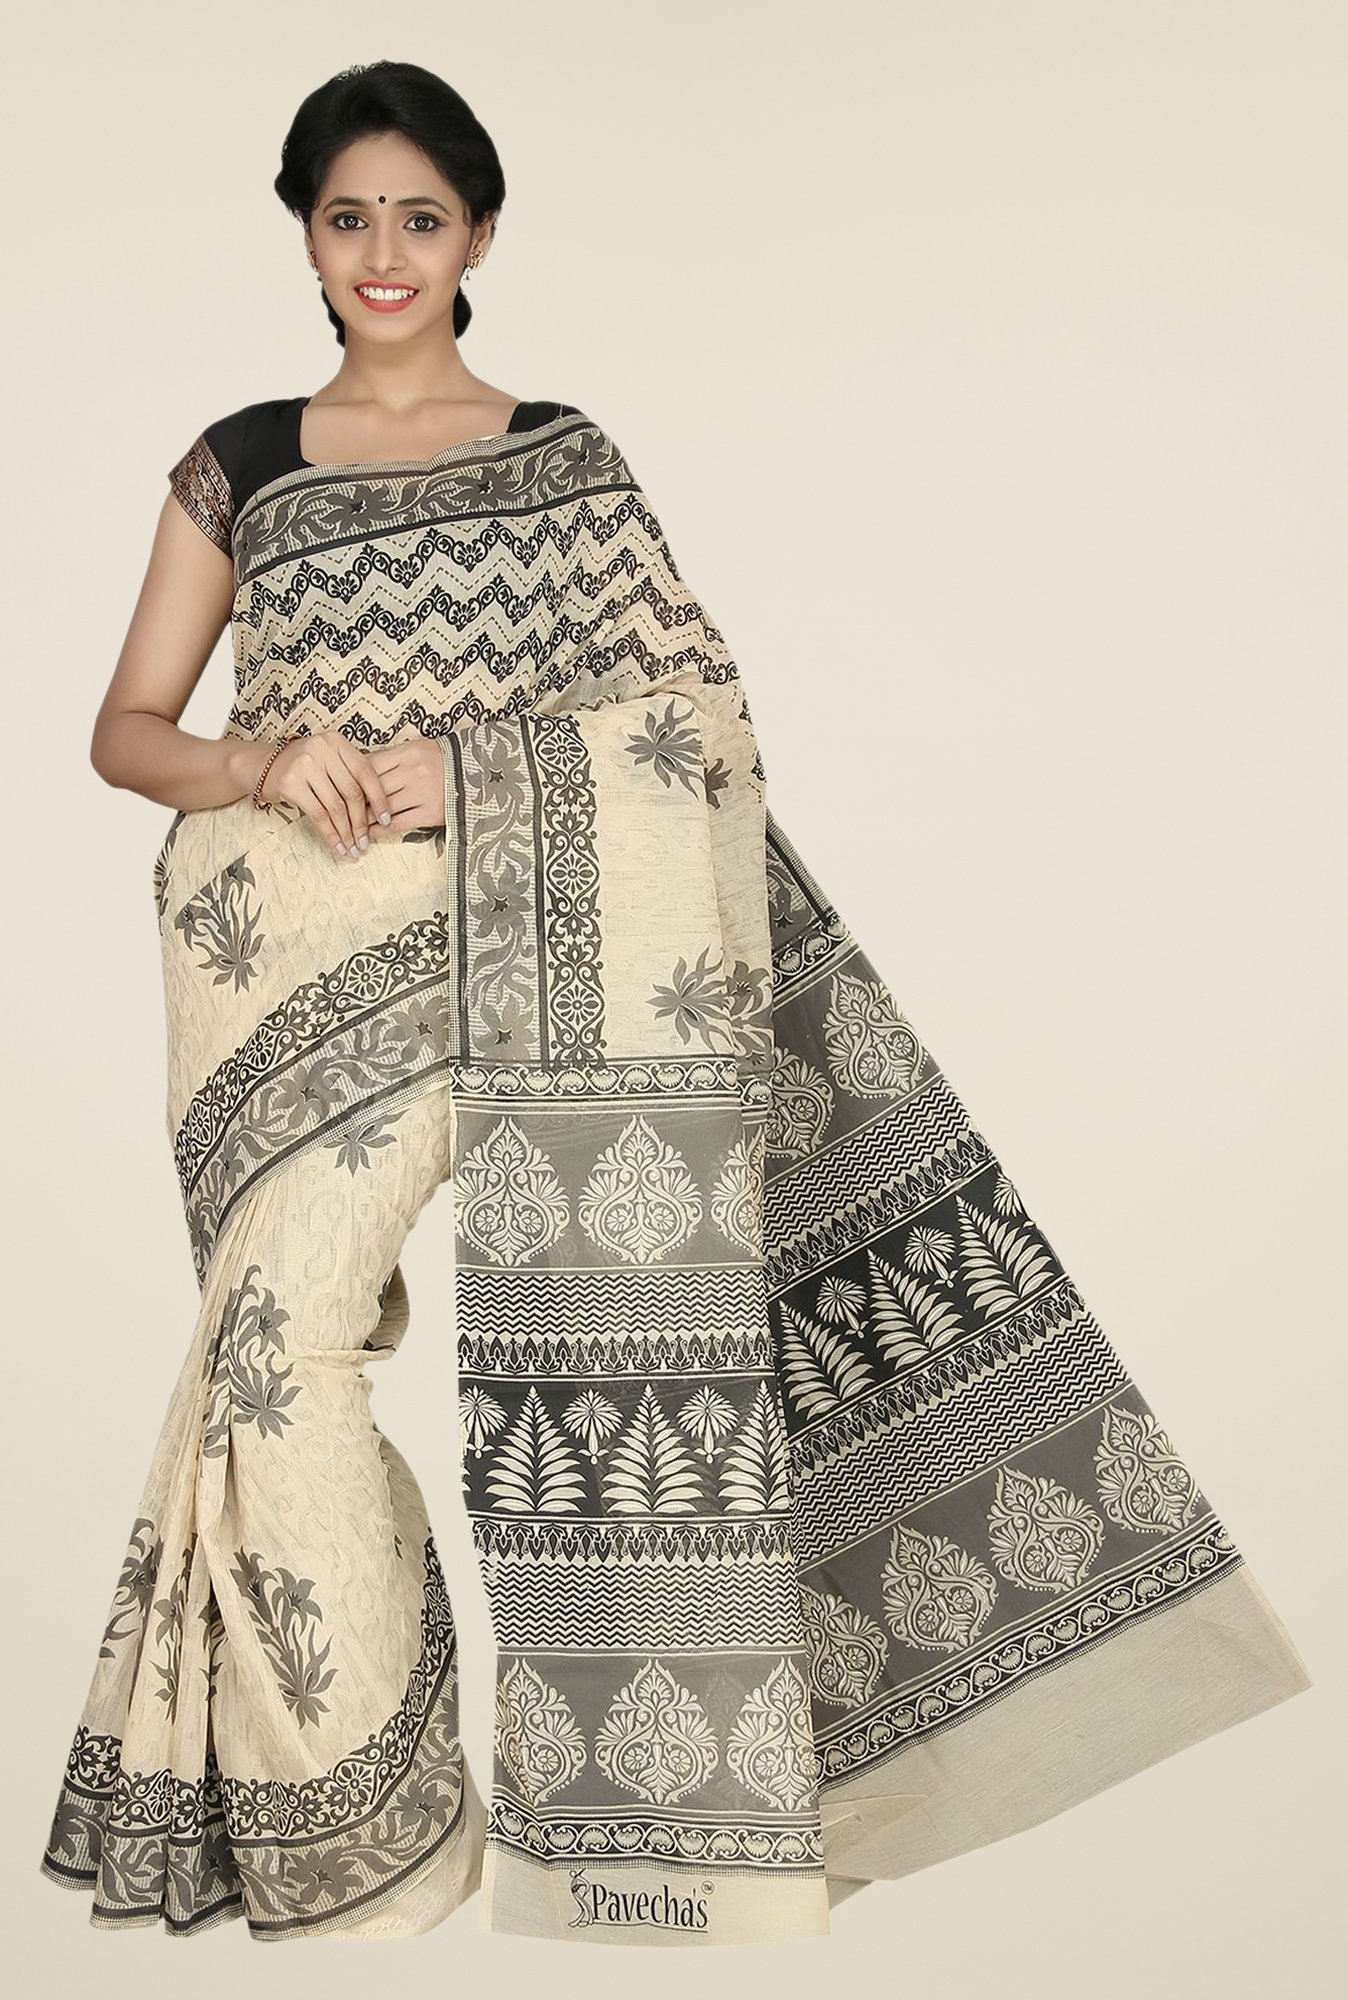 Pavecha's Beige Gadwal Cotton Printed Saree